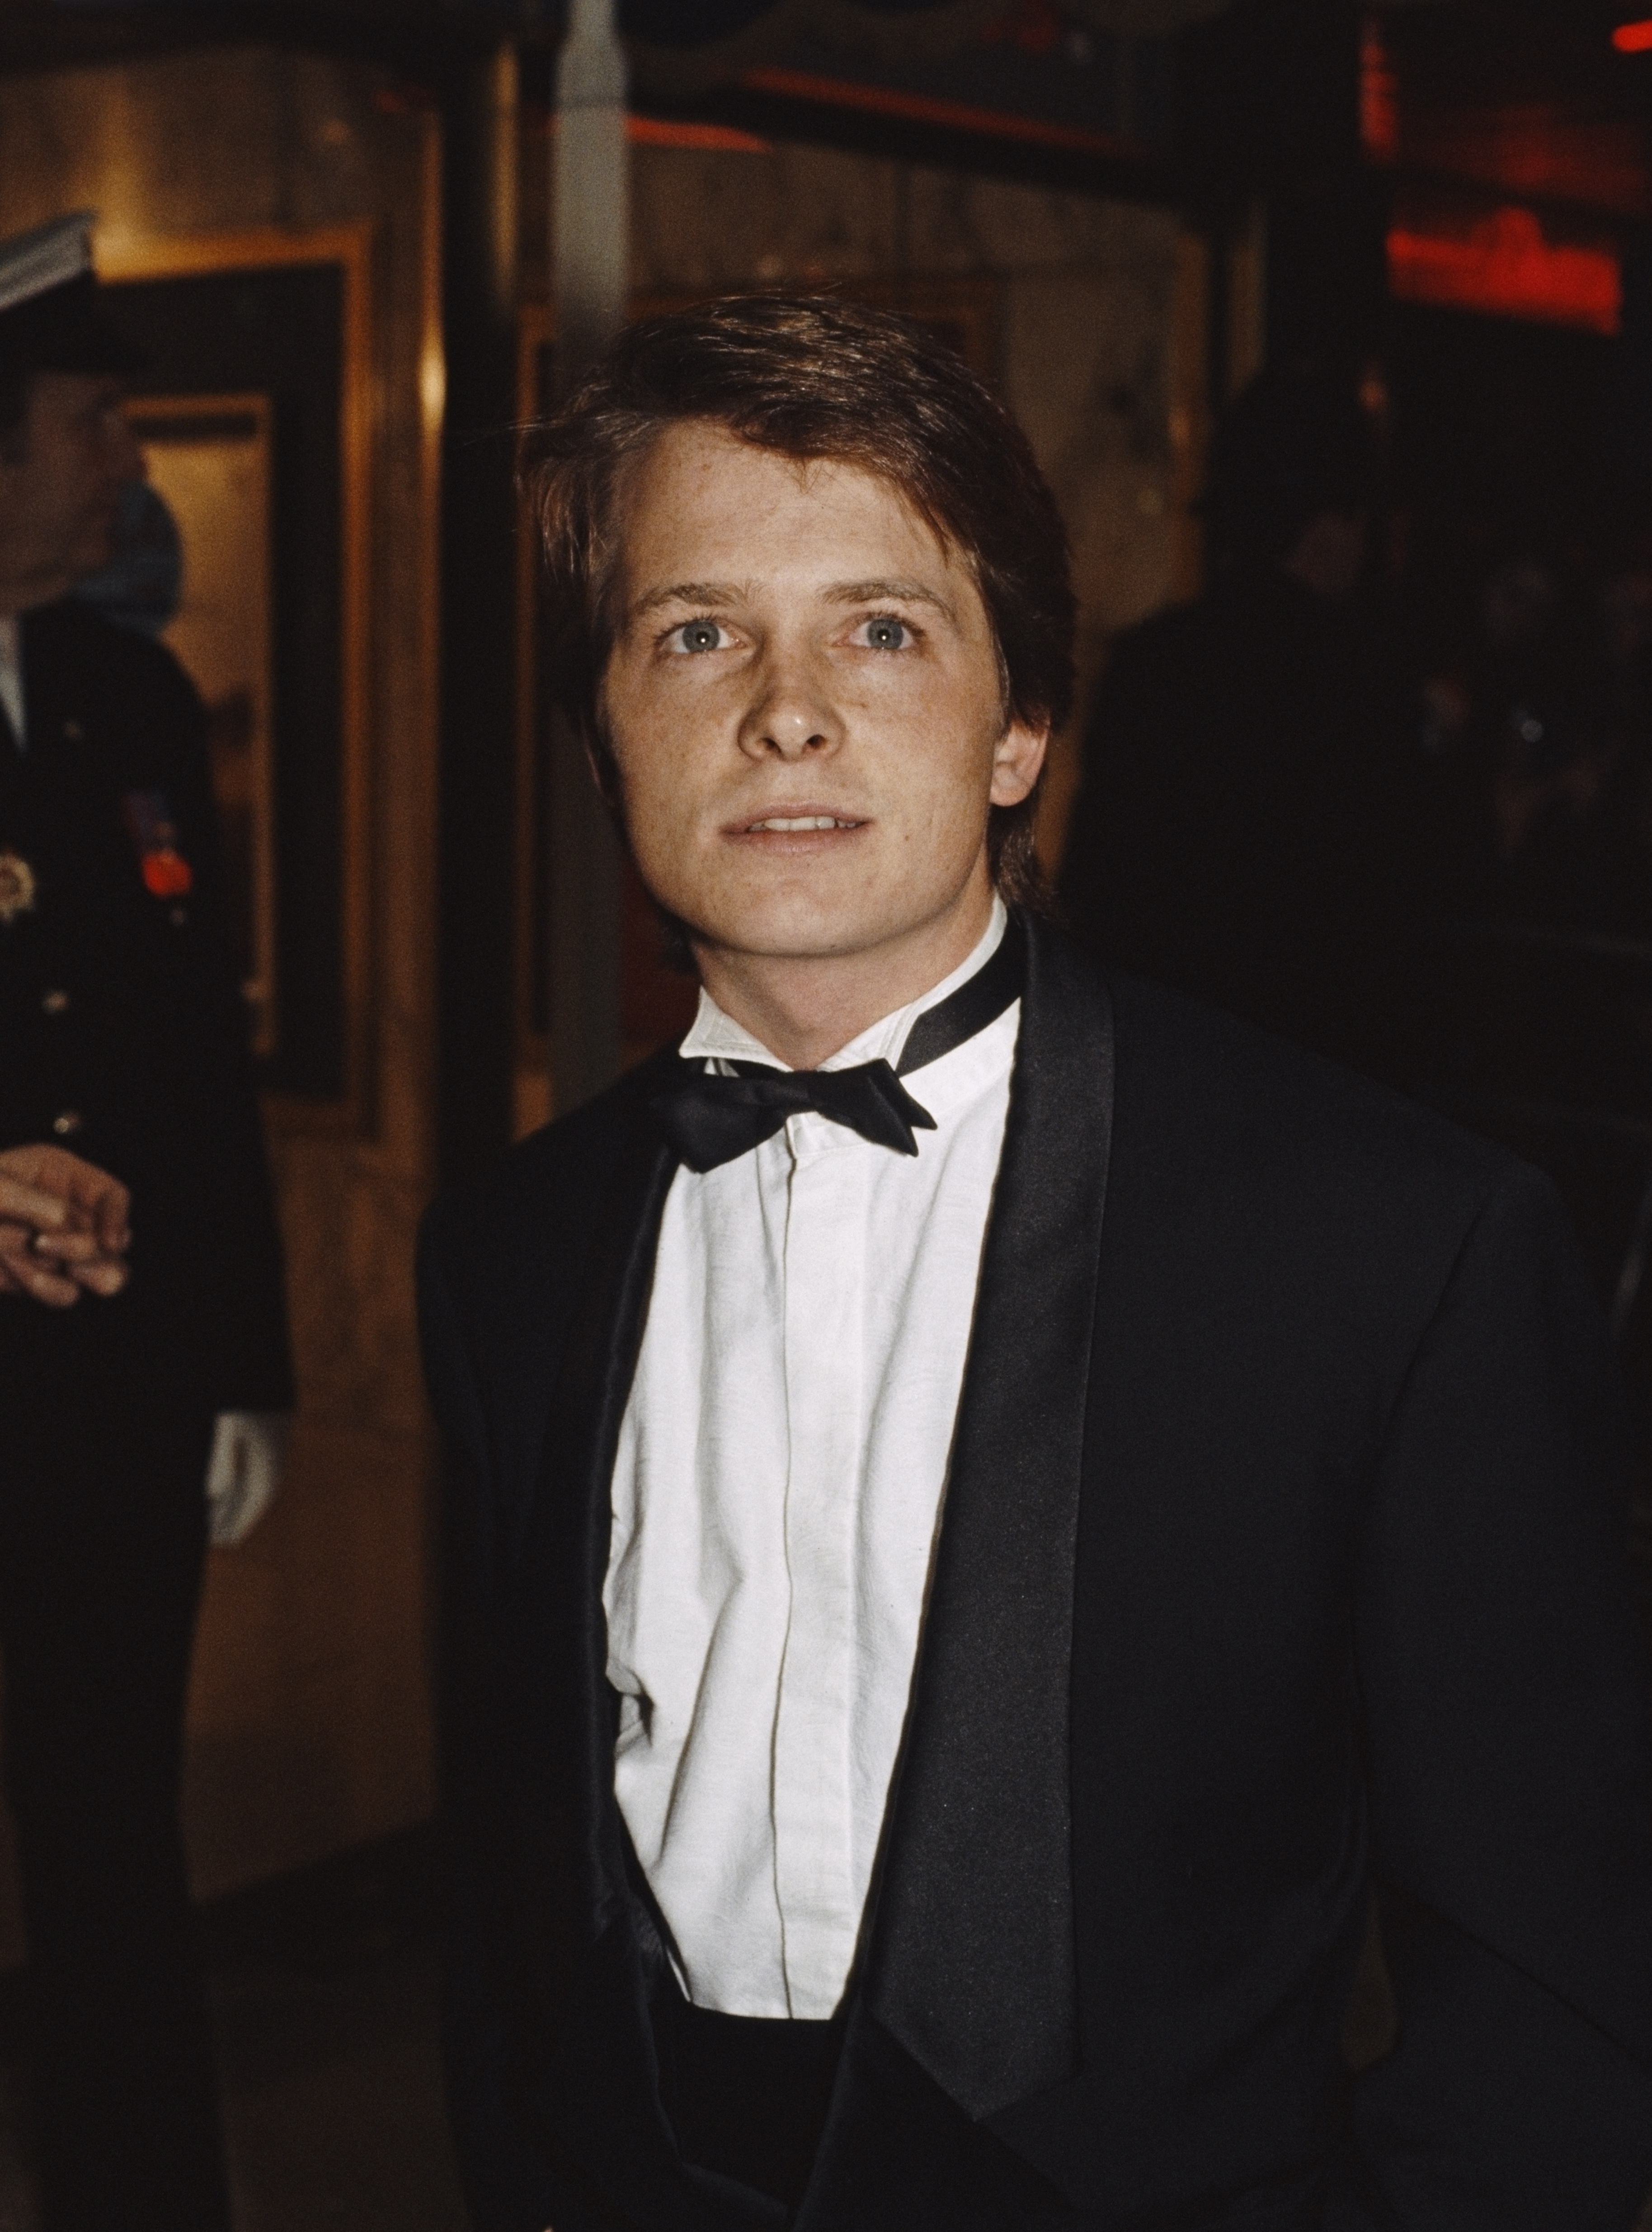 Michael J. Fox at an event for Back to the Future (1985)